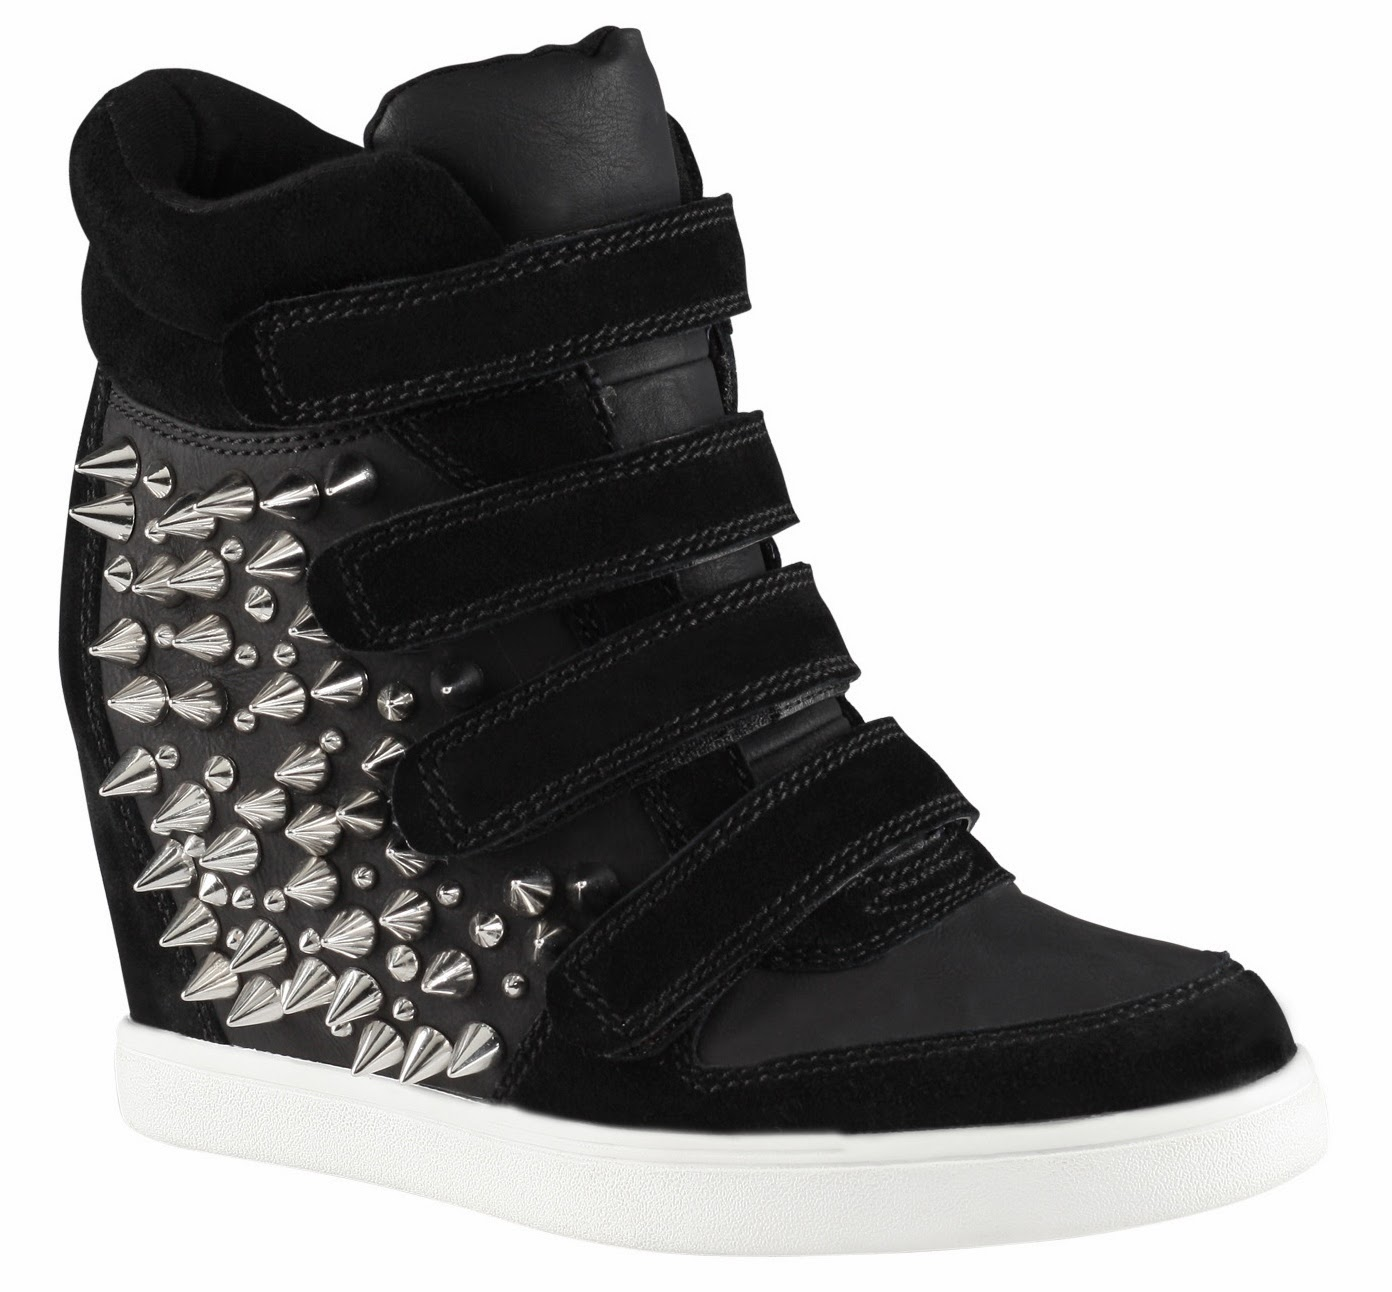 Studded Trainers, Wedge Trainers, Women's Trainers